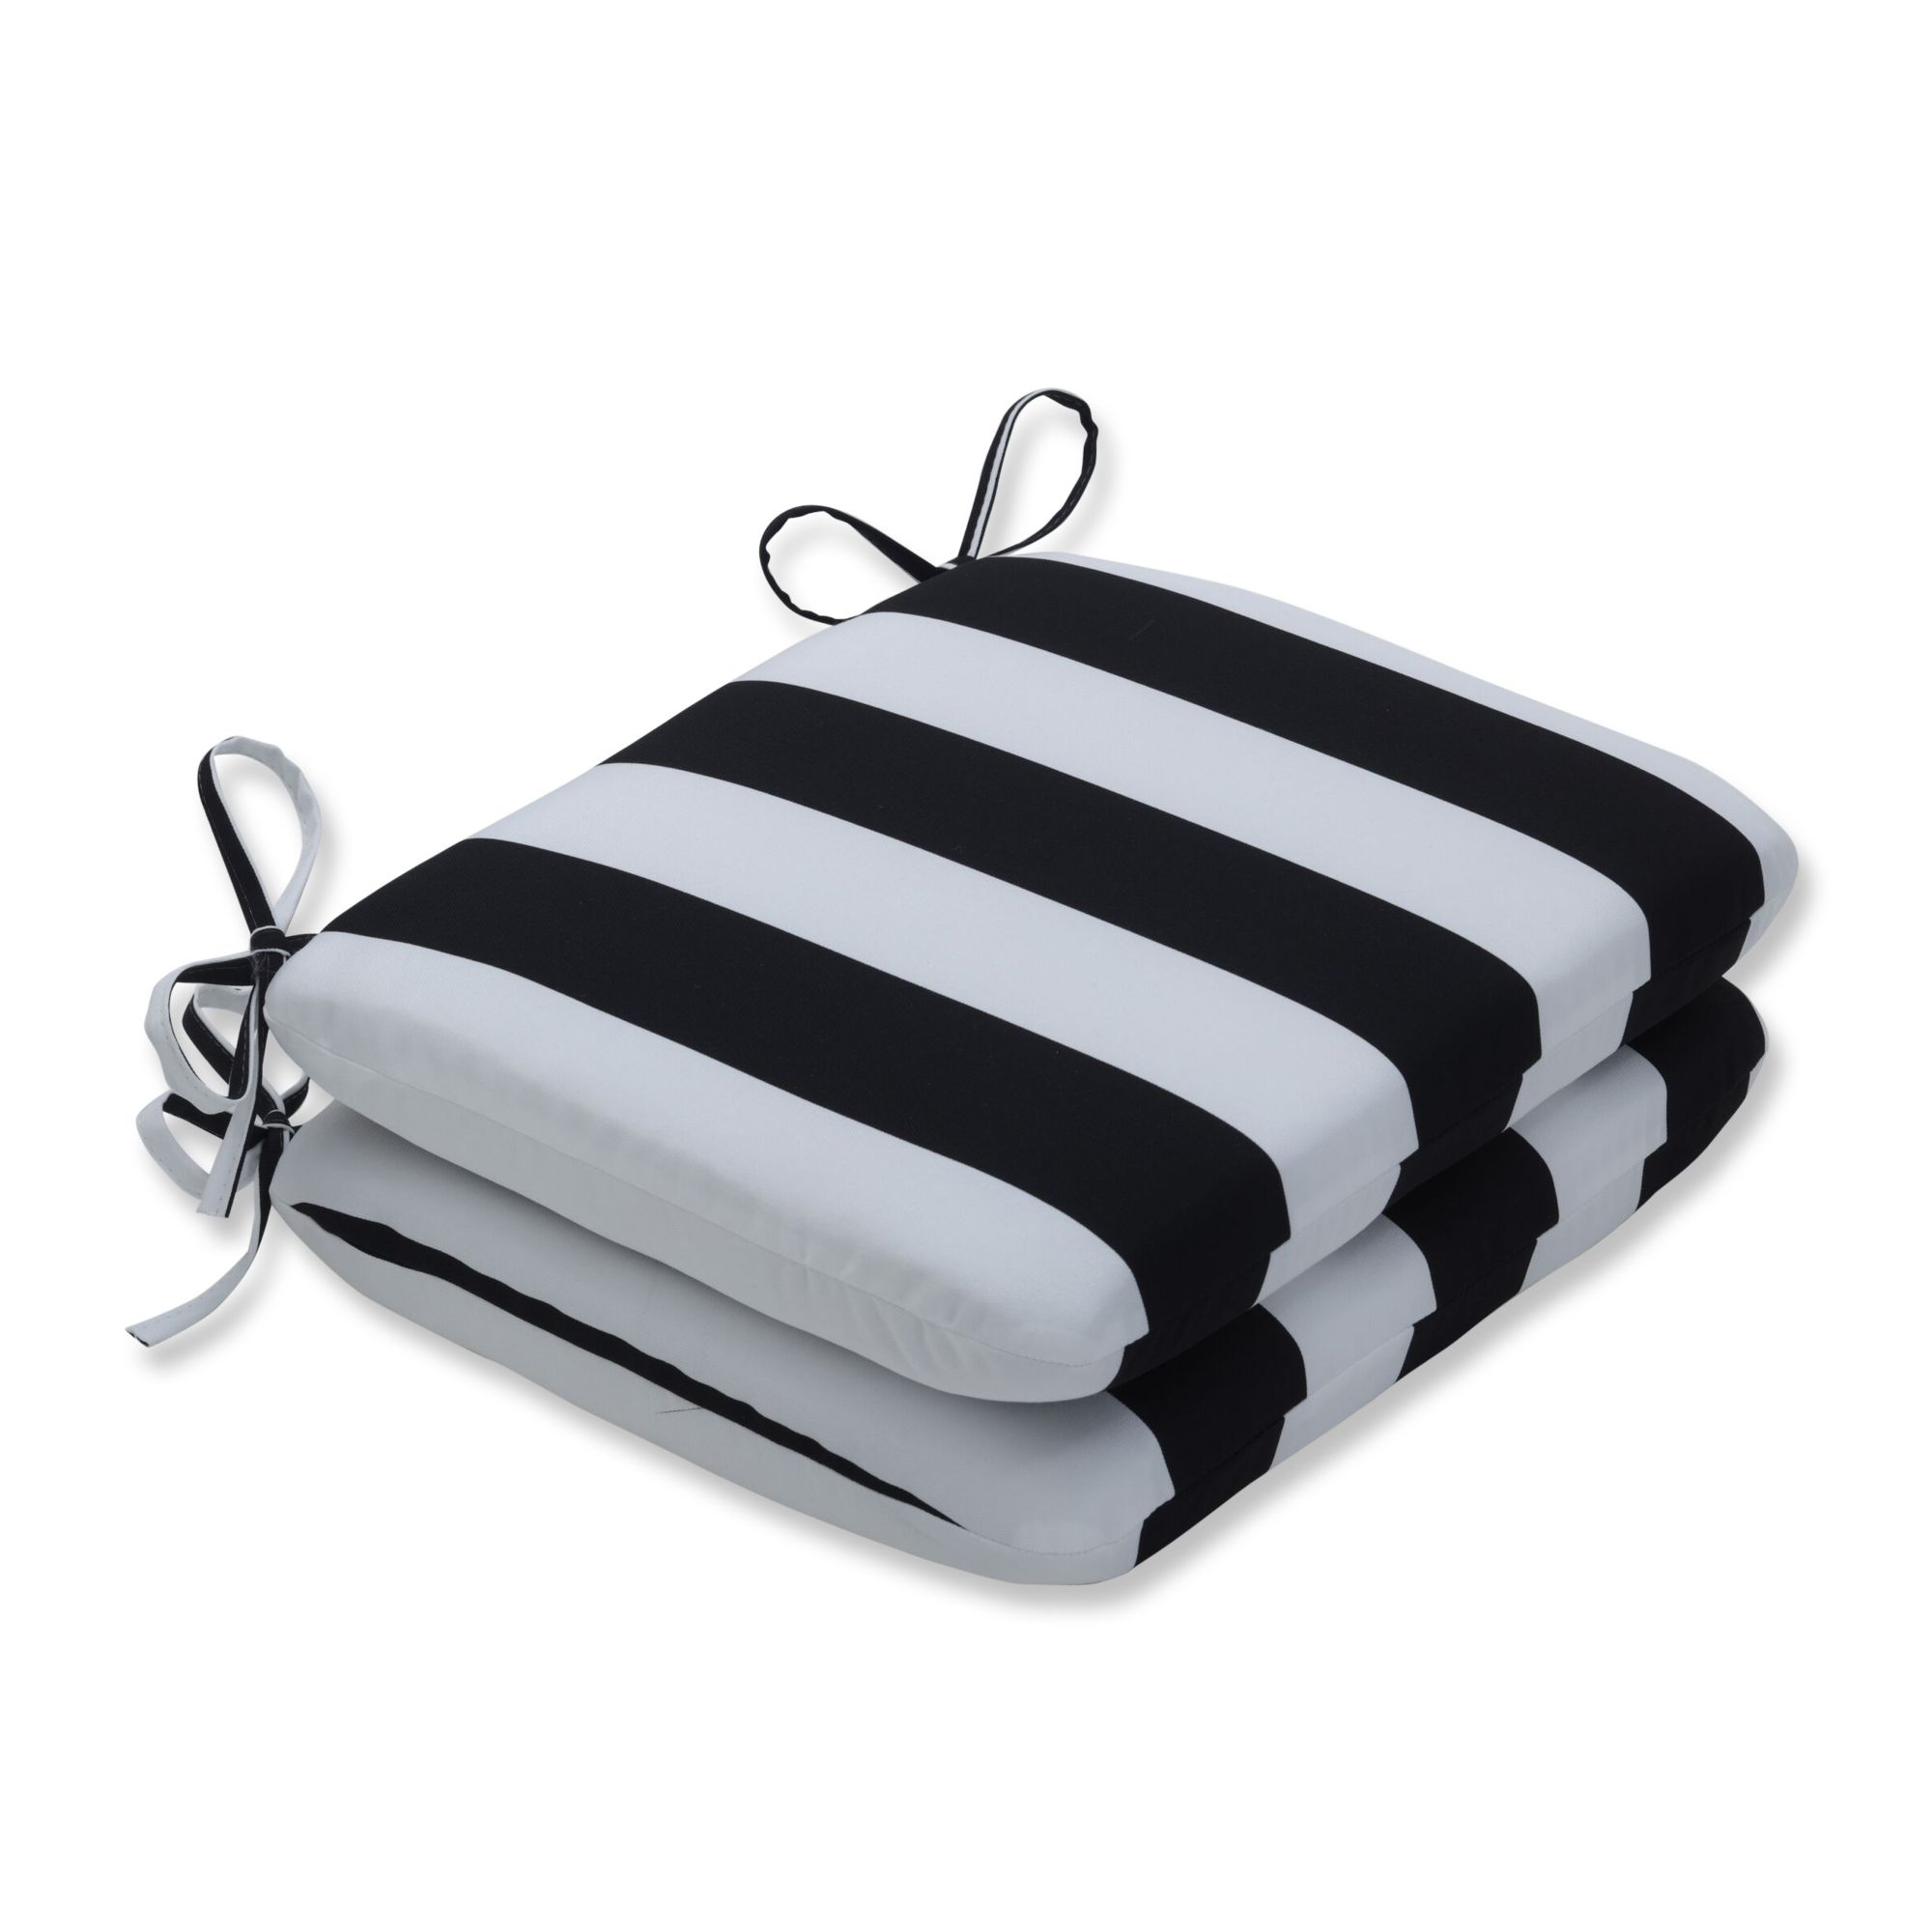 set of 2 black and white striped outdoor patio rounded corners seat cushion 18 5